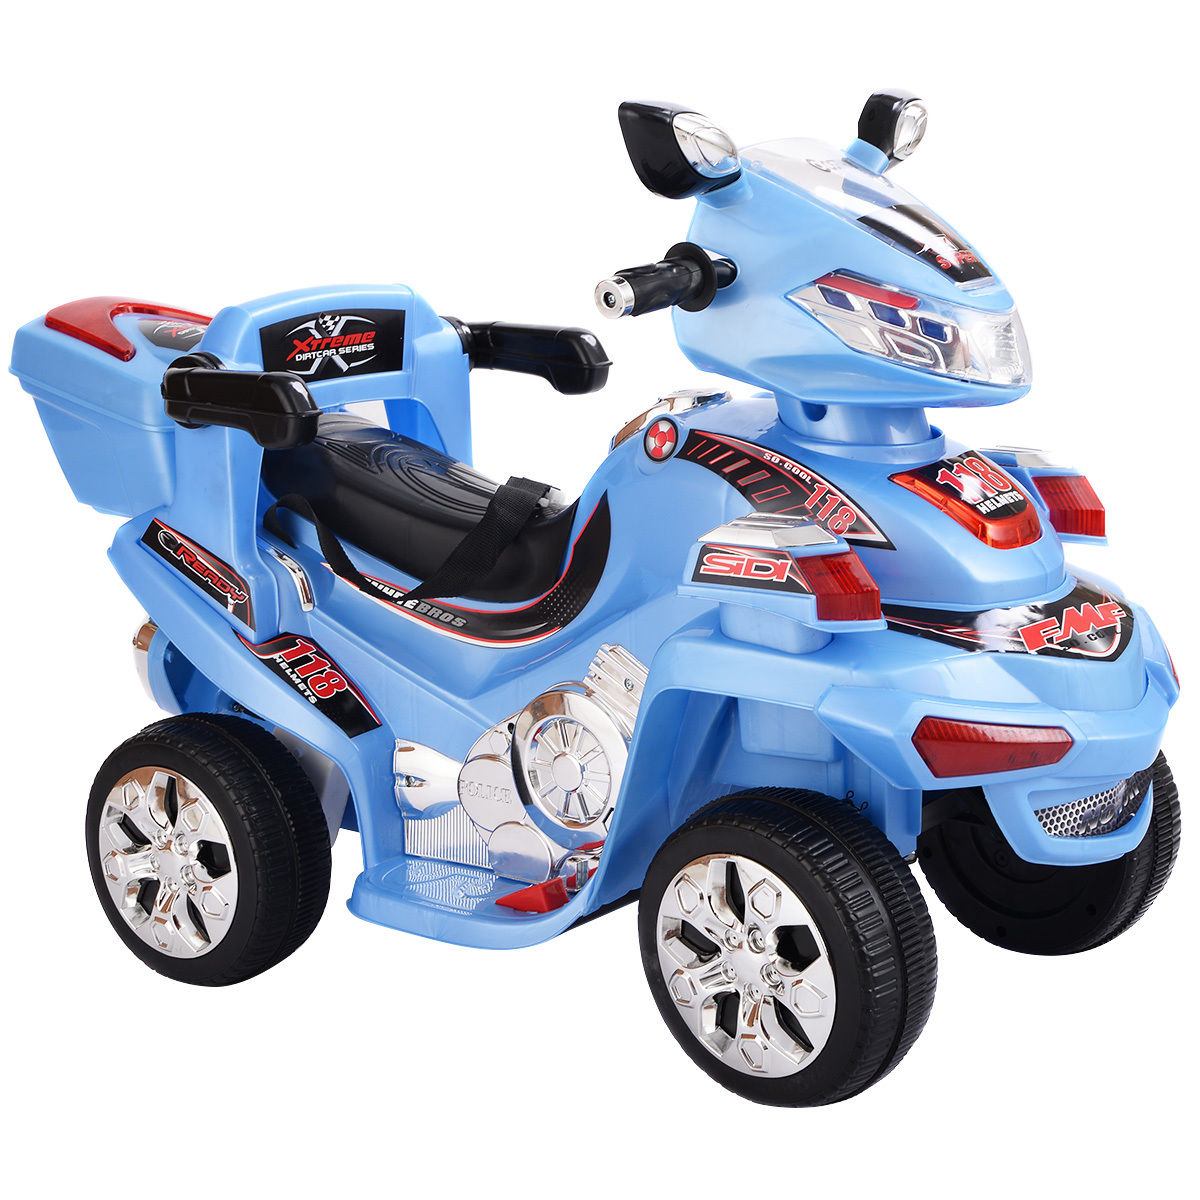 Costway 4 Wheel Kids Ride On Motorcycle 6V Battery Powered R C Electric Toy Power Bicyle... by Costway